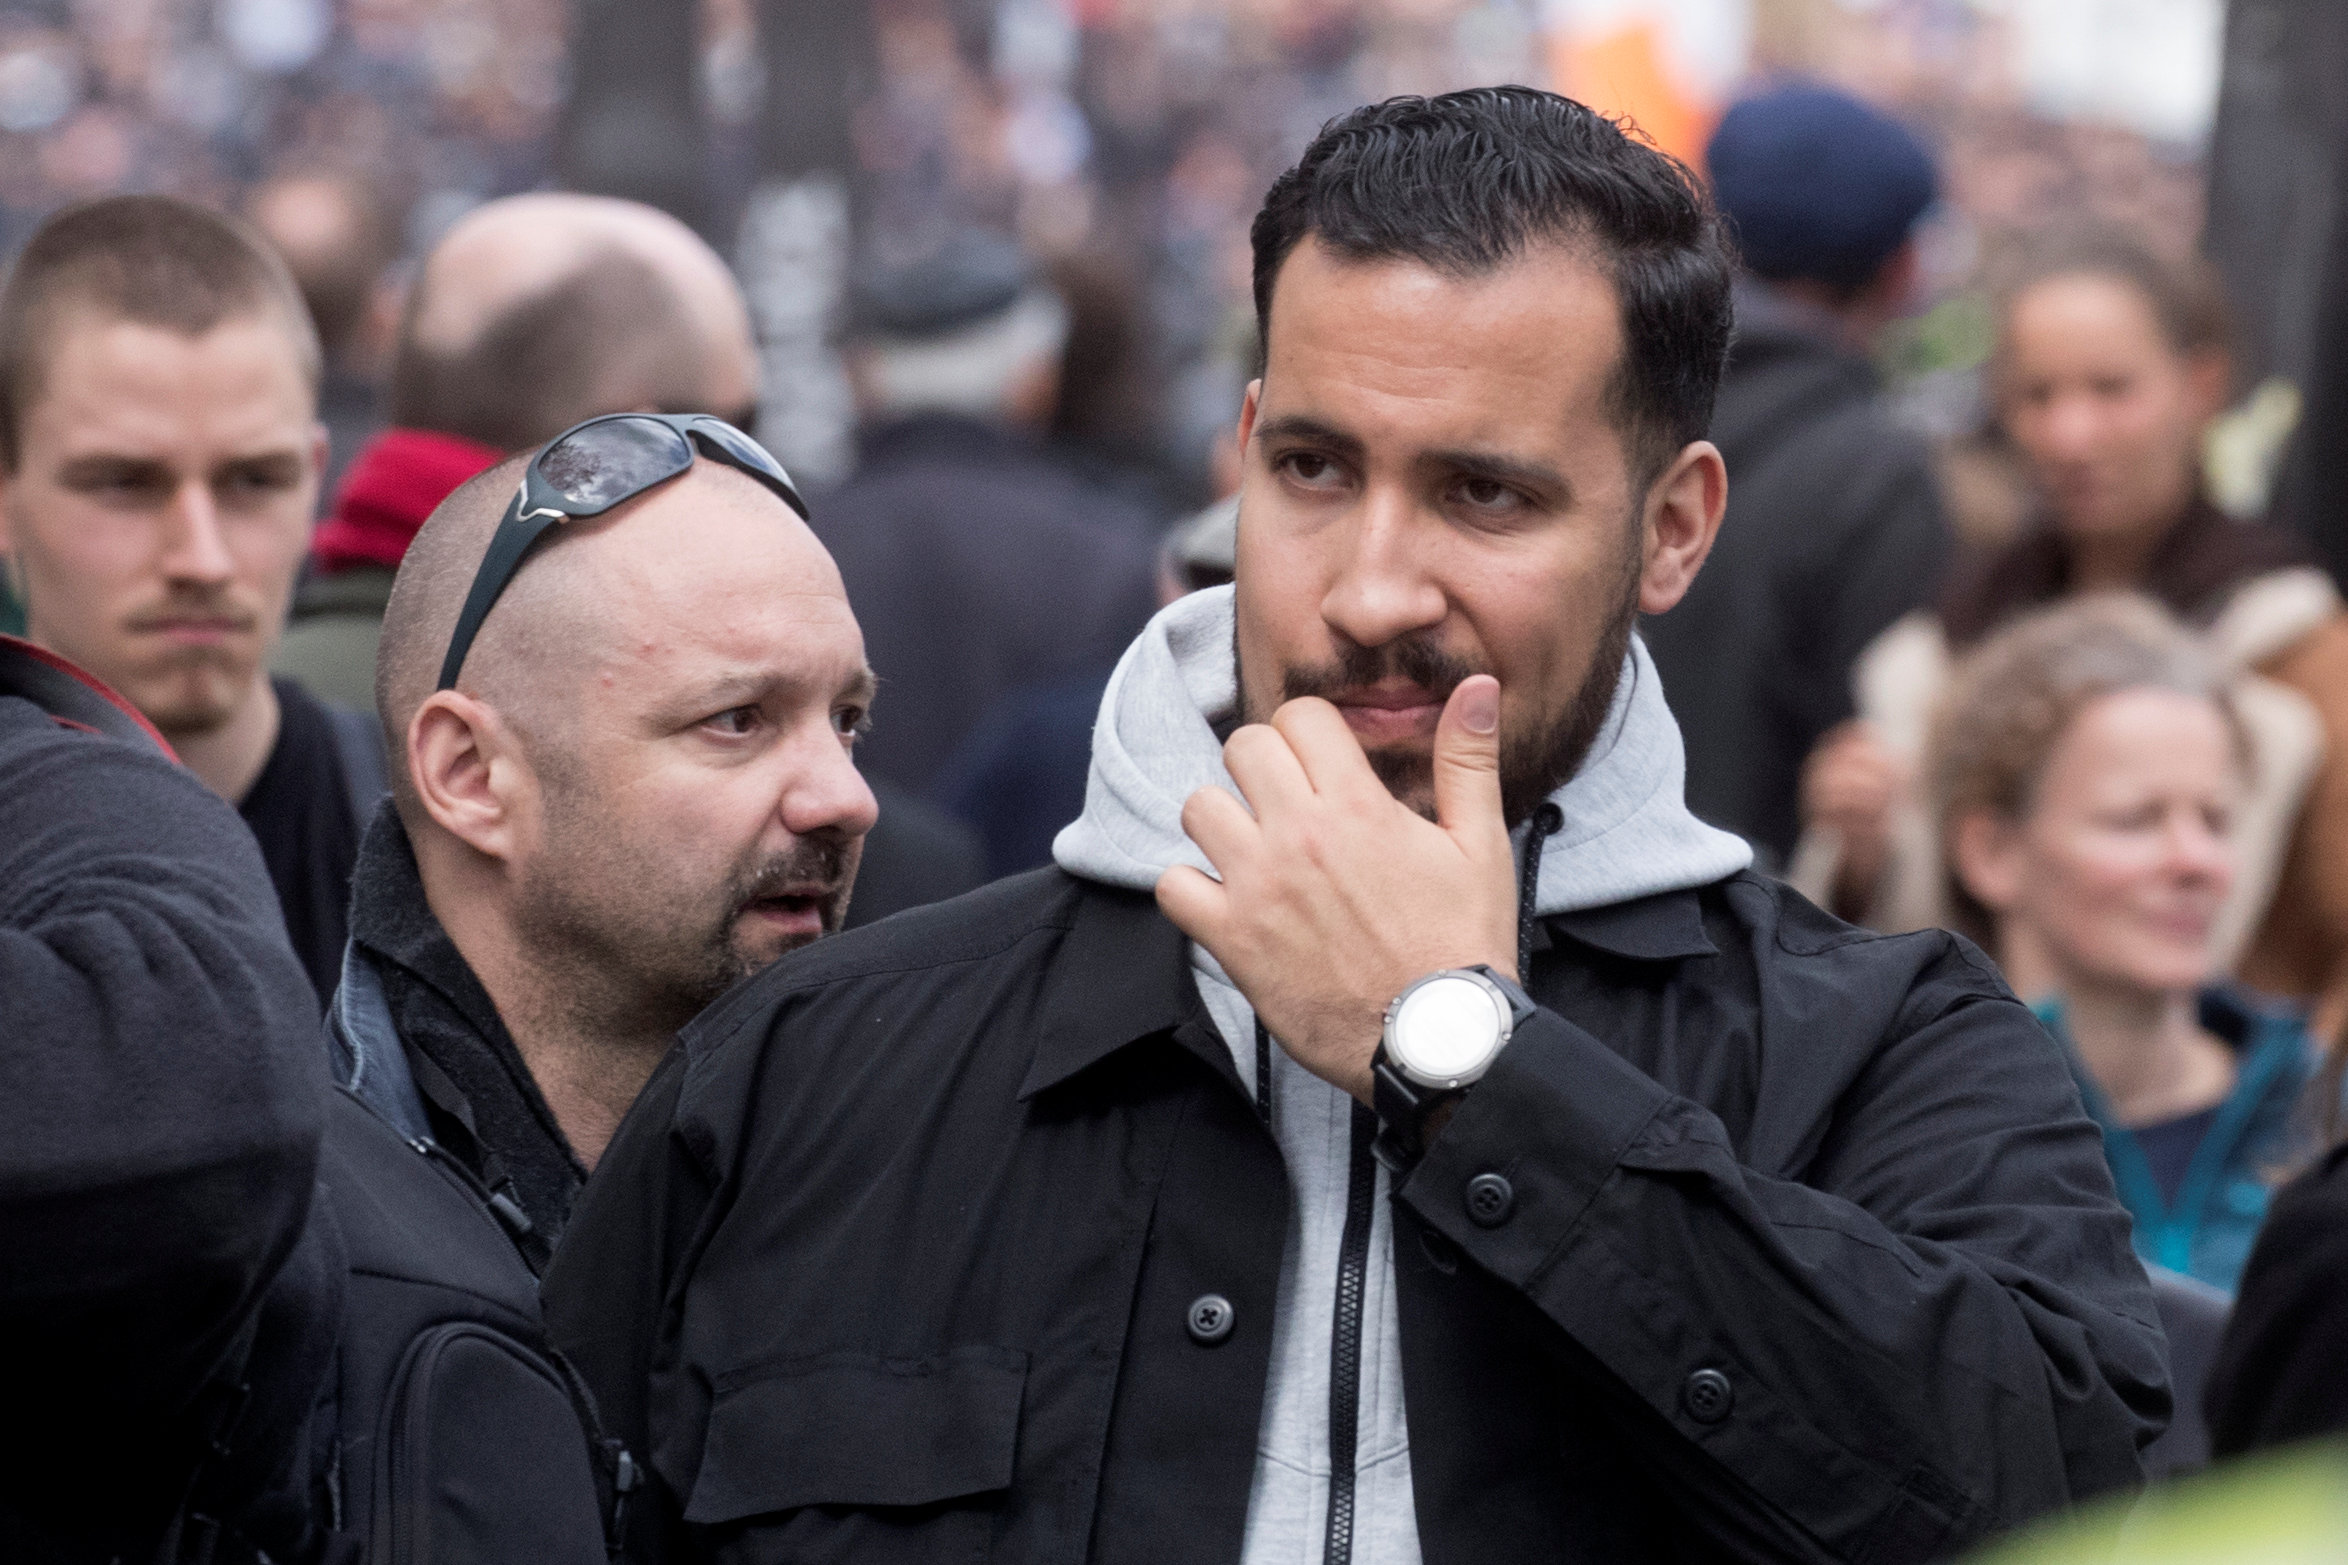 Emmanuel Macron sacks security aide Alexandre Benalla for assaulting     Alexandre Benalla was originally demoted and given a 15 day suspension by  the Elys    e